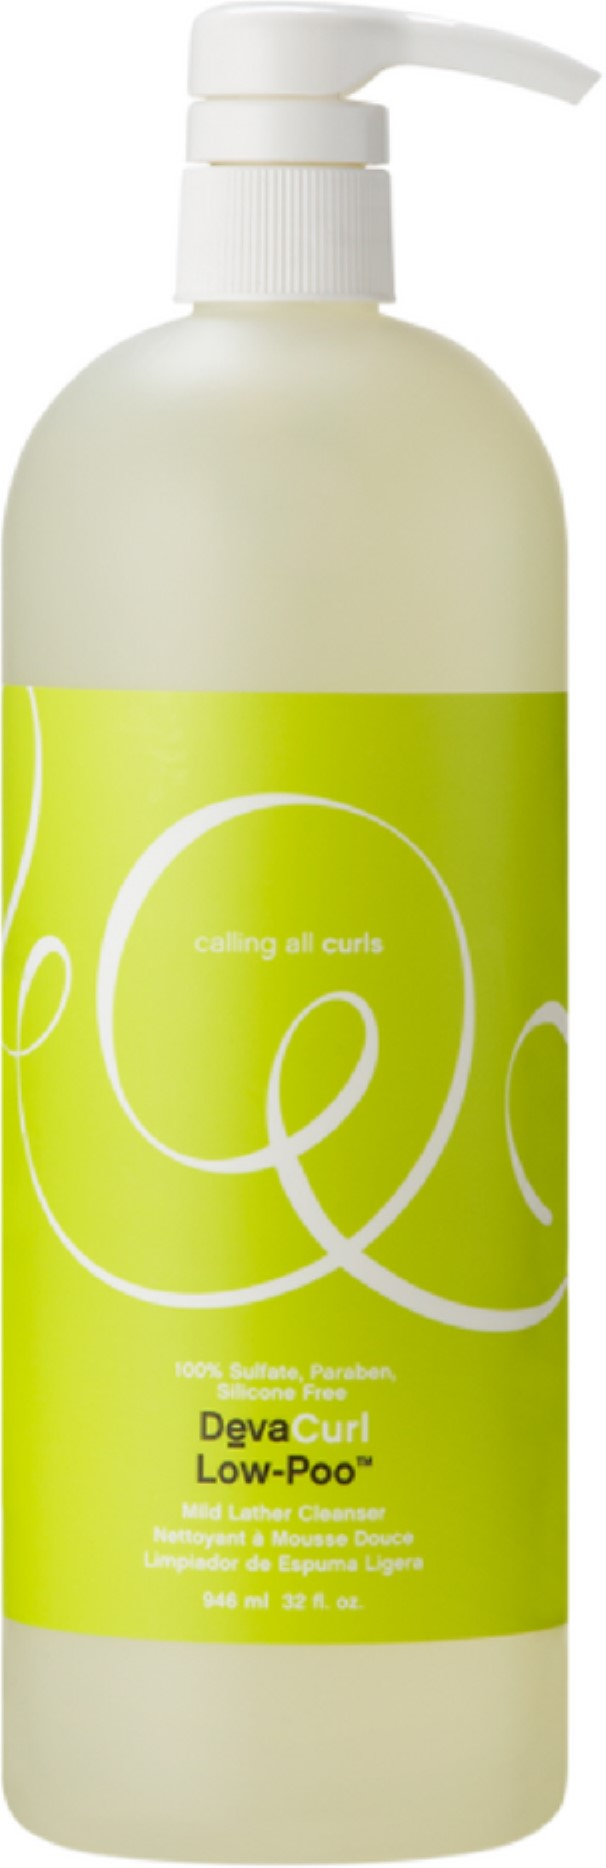 DevaCurl Low-Poo Original (Mild Lather Cleanser - For Curly Hair ...